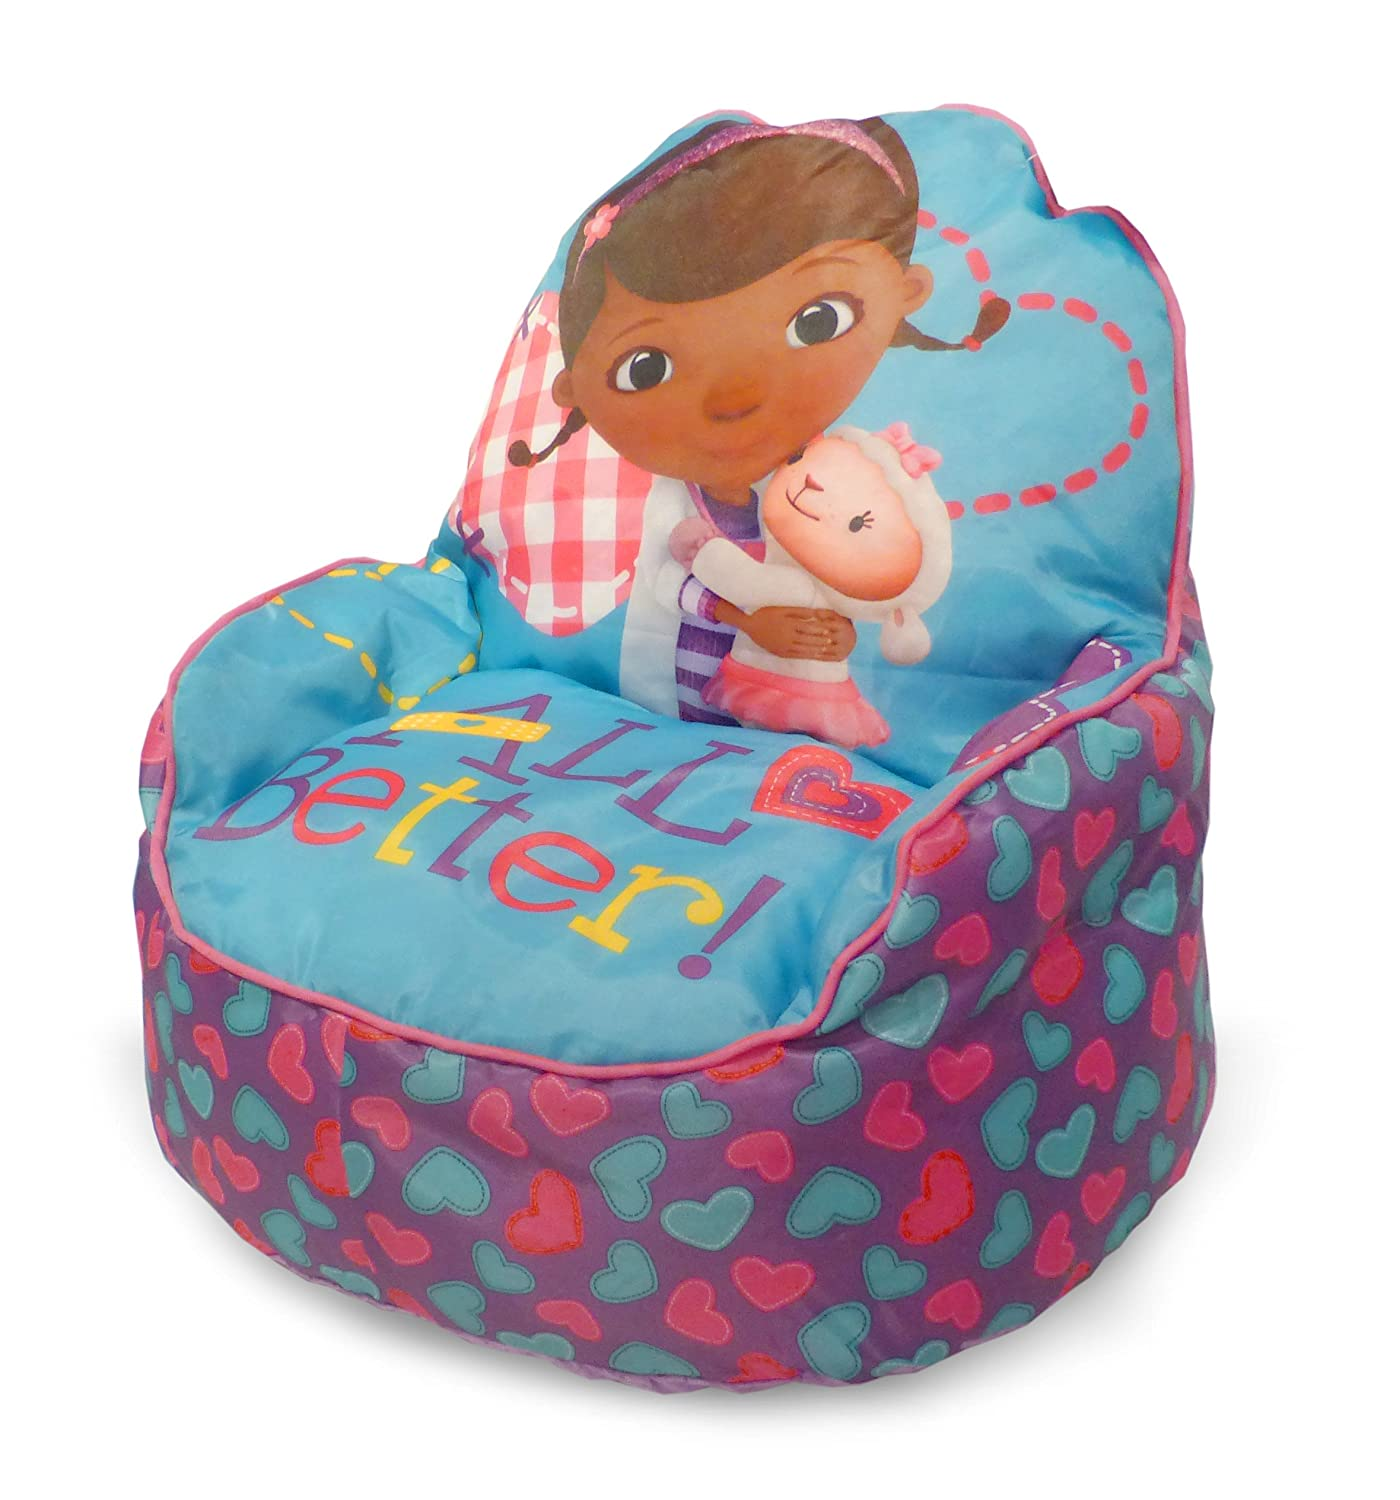 Disney Doc McStuffins Toddler Bean Bag Sofa Chair